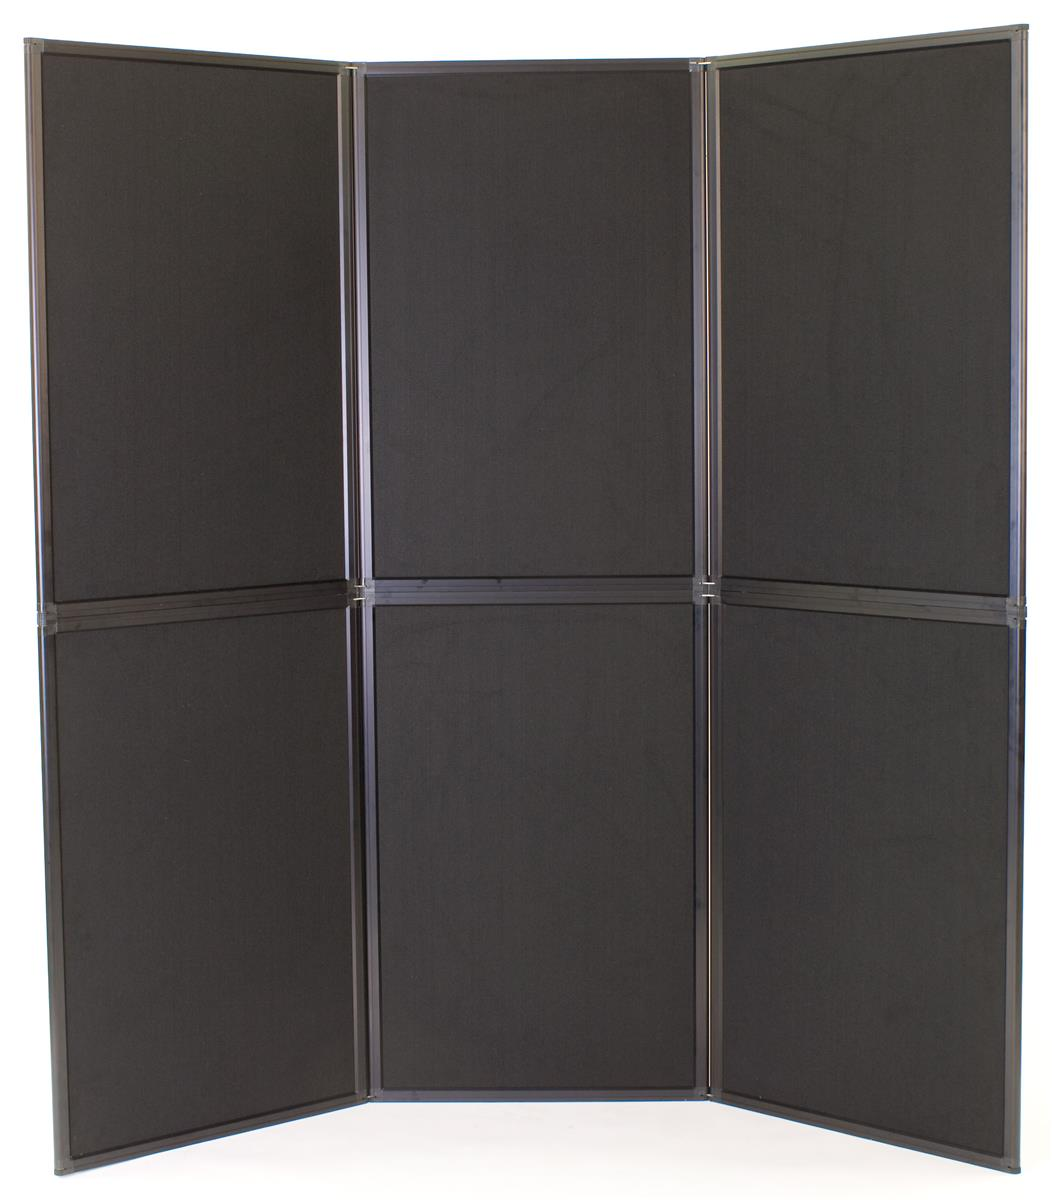 Portable Exhibition Panels : Portable display panels equipped with black gray